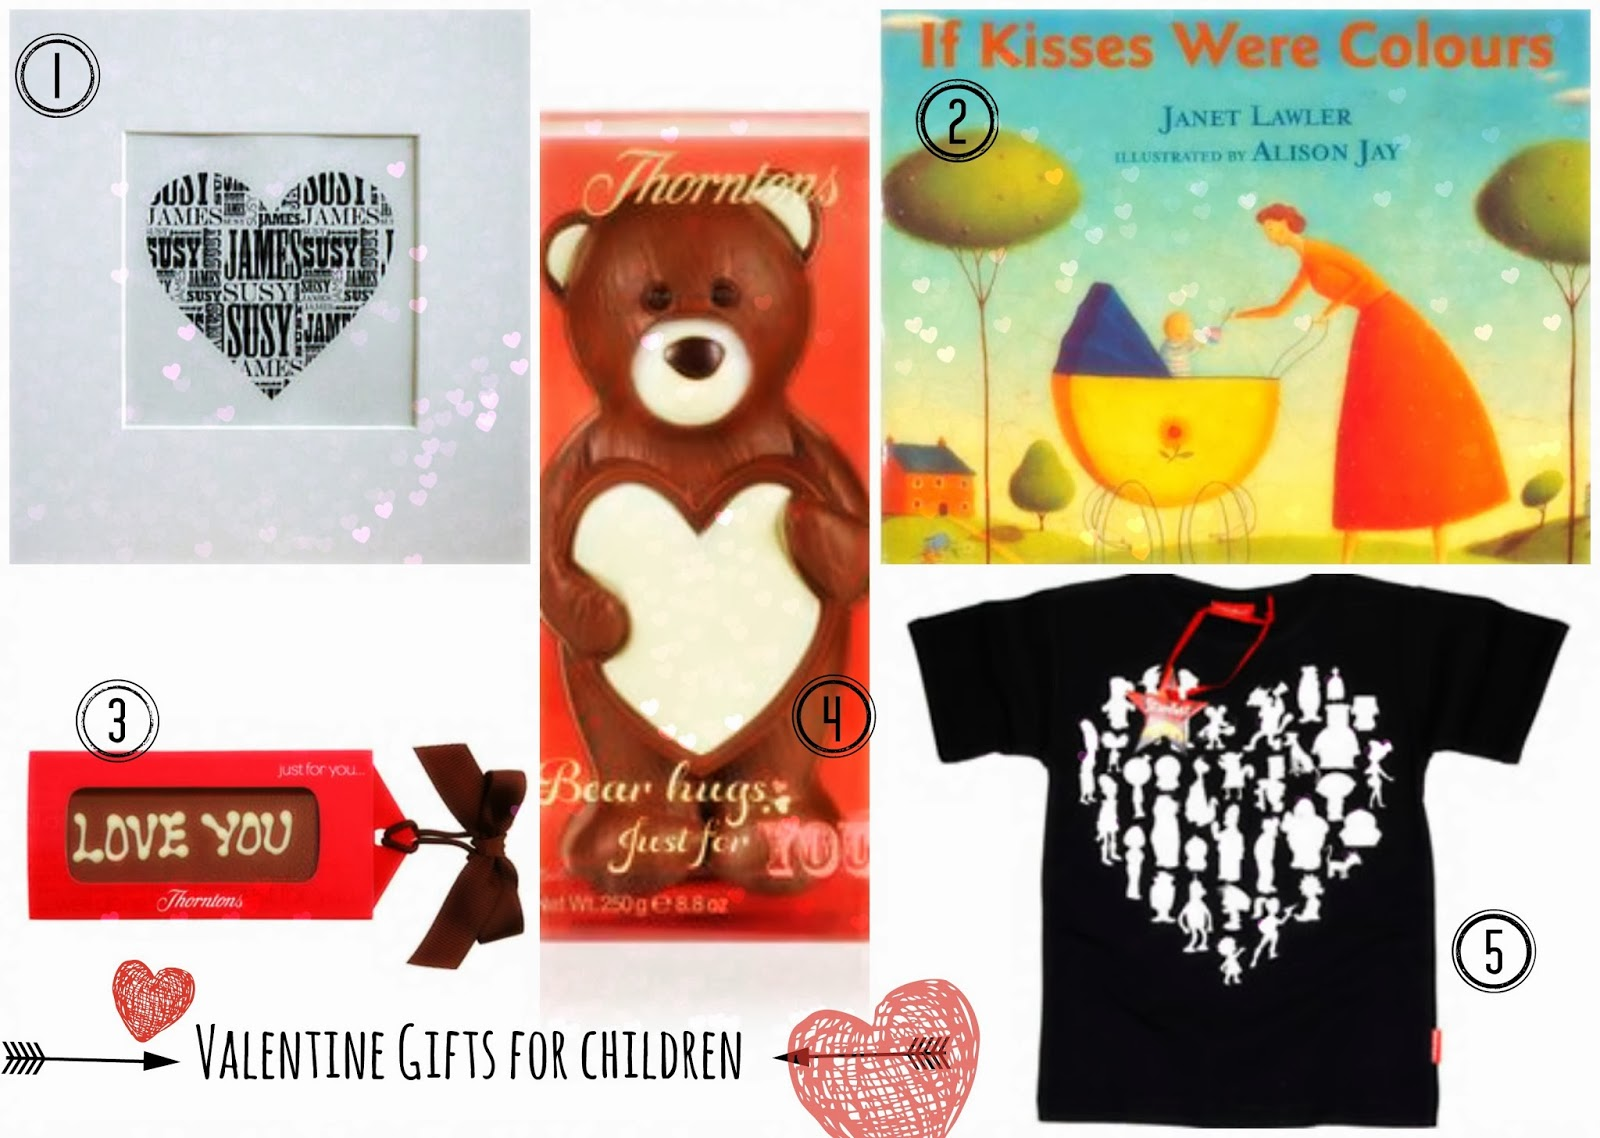 Valentine Day gifts for children